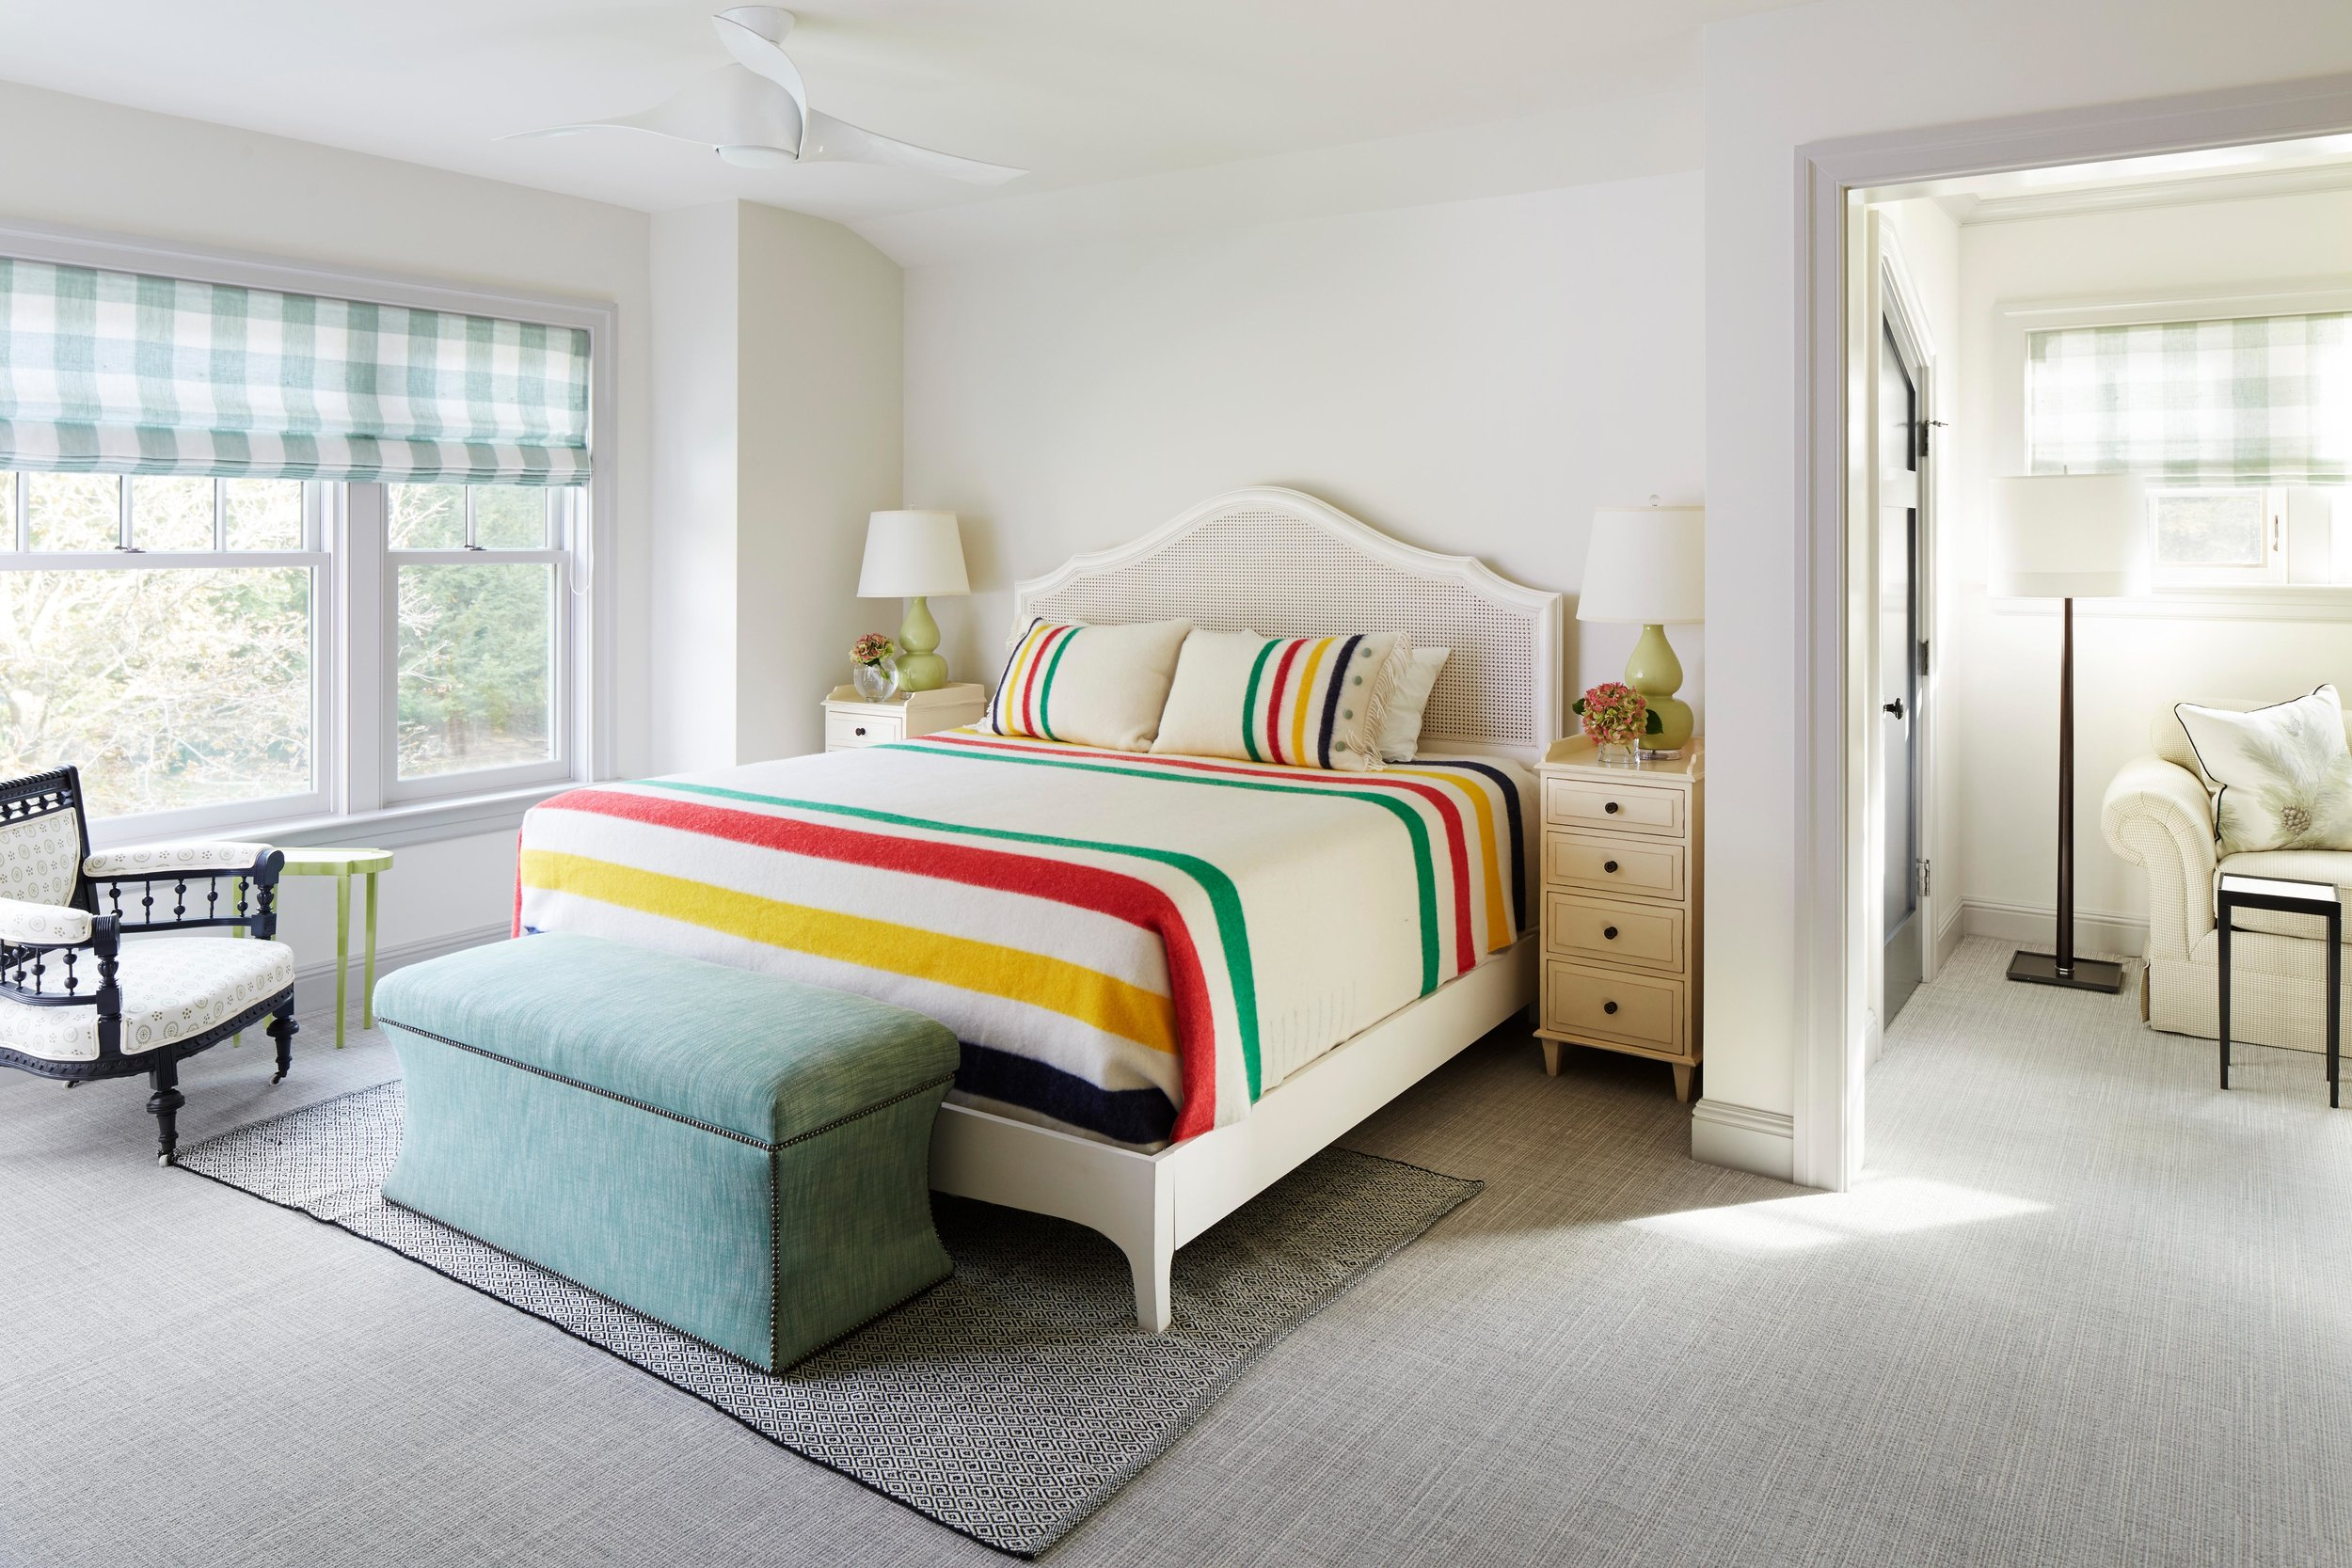 Camp blankets inspired this guest bedroom. Come see more interior design inspiration from Elizabeth Drake. Photo by Werner Straube. #interiordesign #classicdesign #traditionaldecor #housetour #elizabethdrake